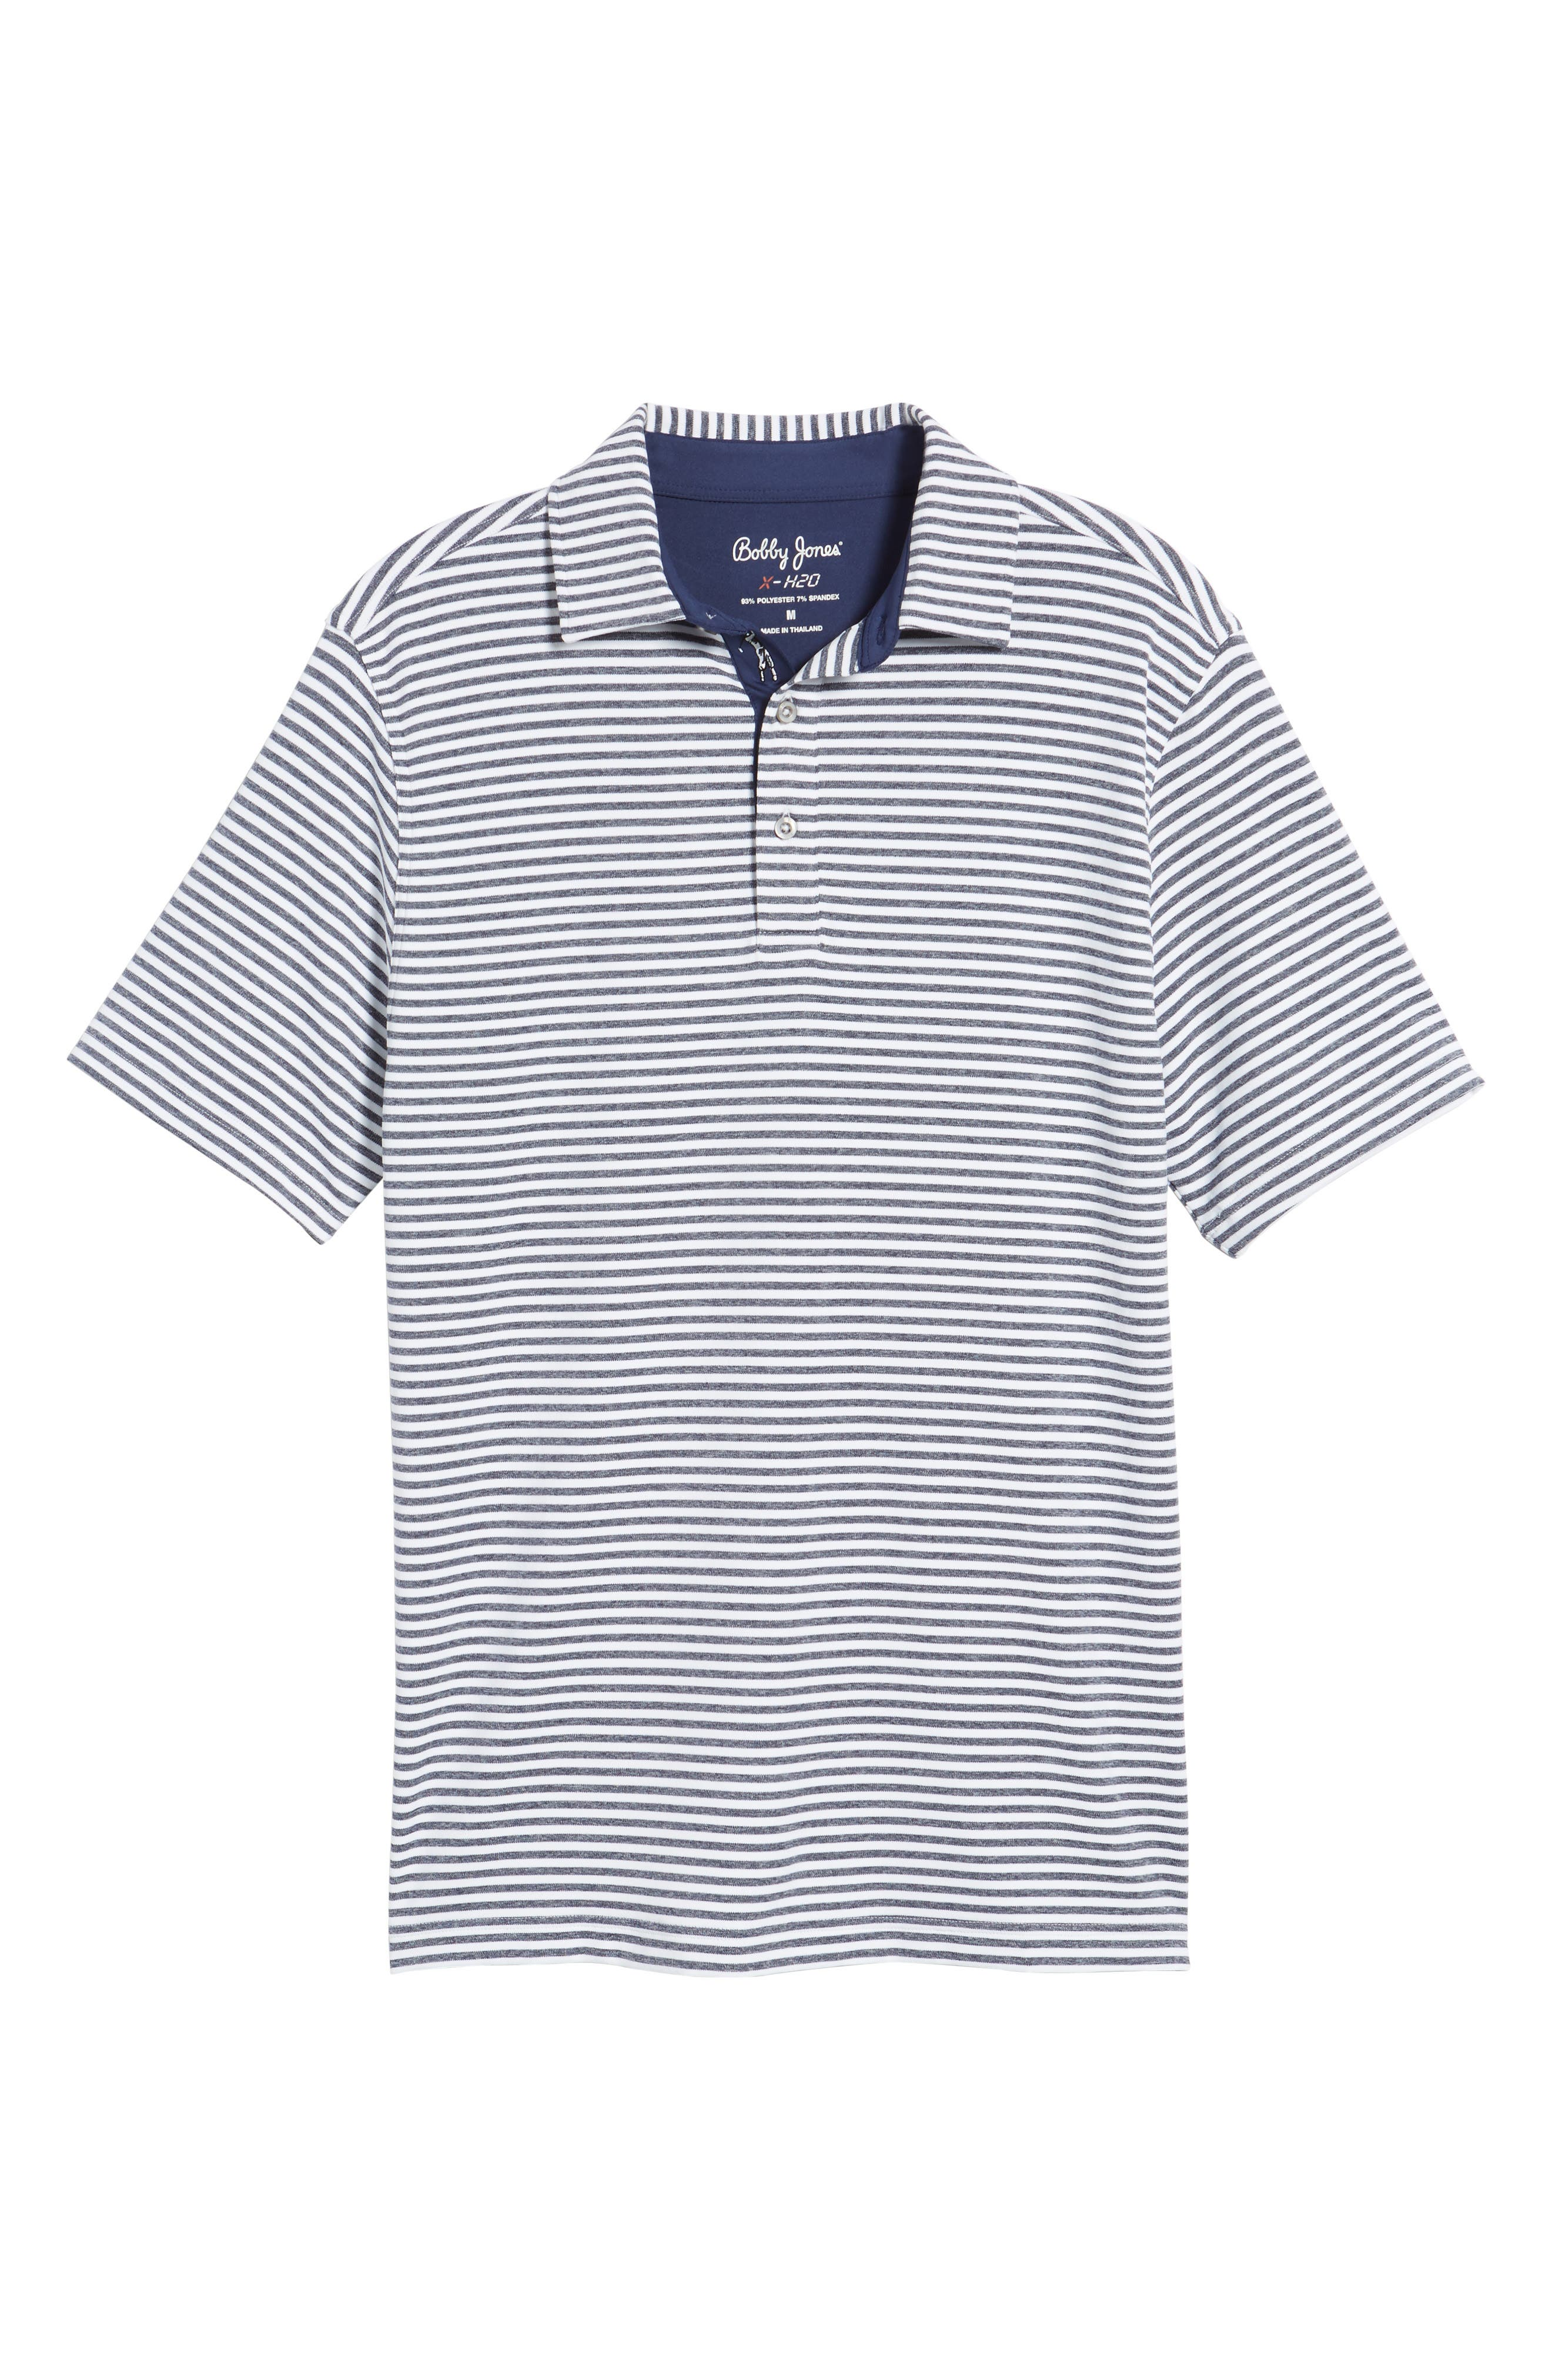 XH2O Tranquil Stripe Jersey Polo,                             Alternate thumbnail 6, color,                             100